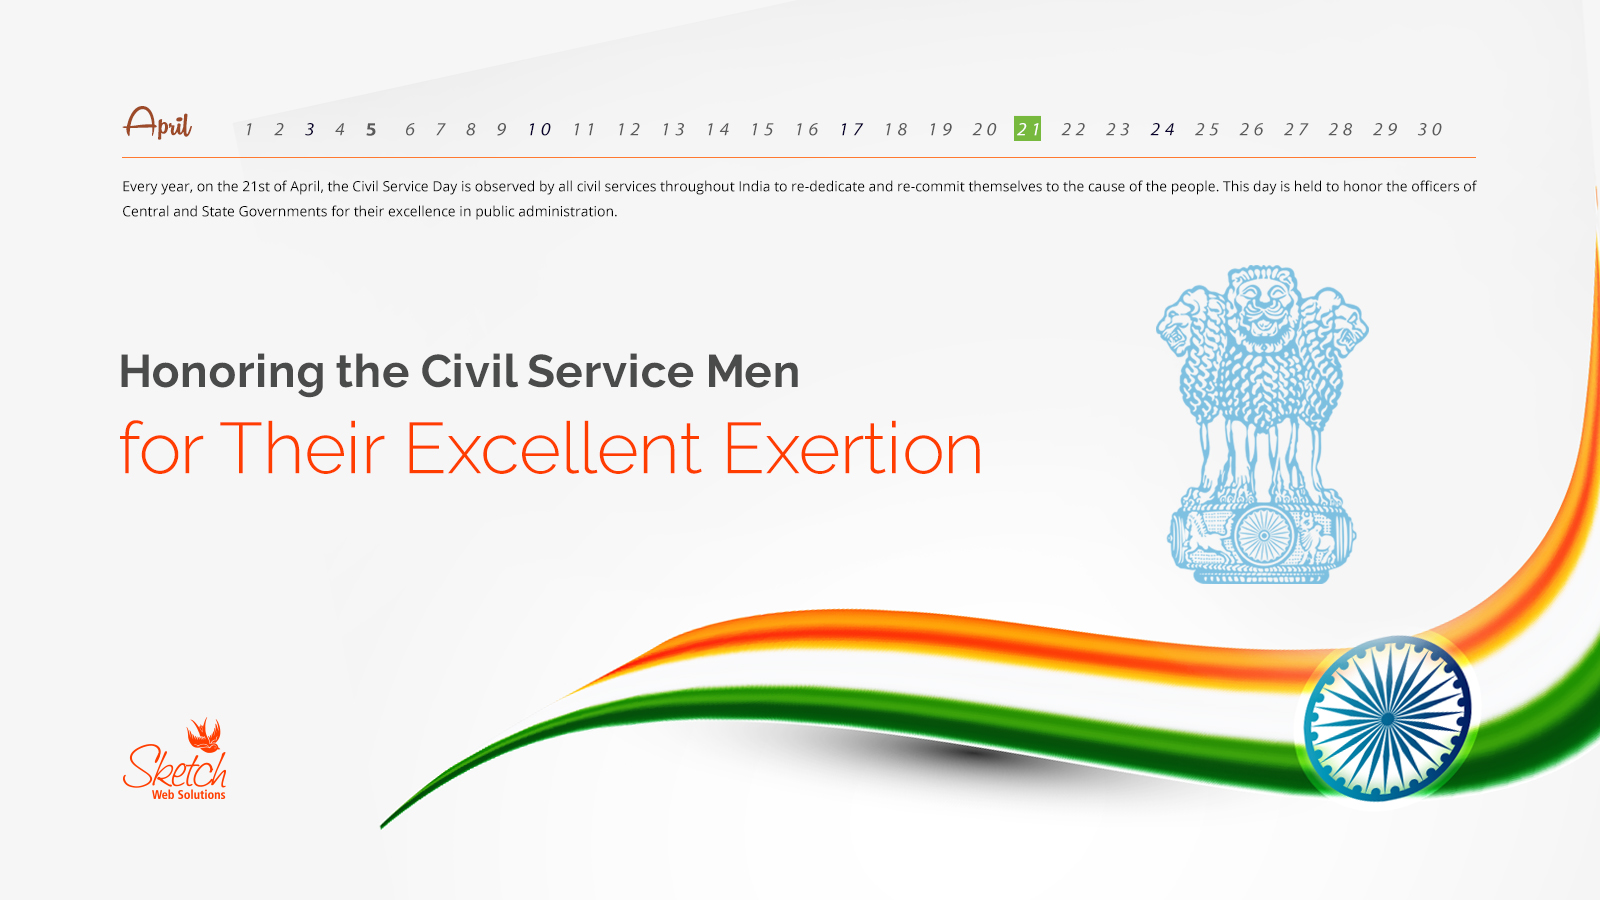 Honoring the Civil Service Men for Their Excellent Exertion